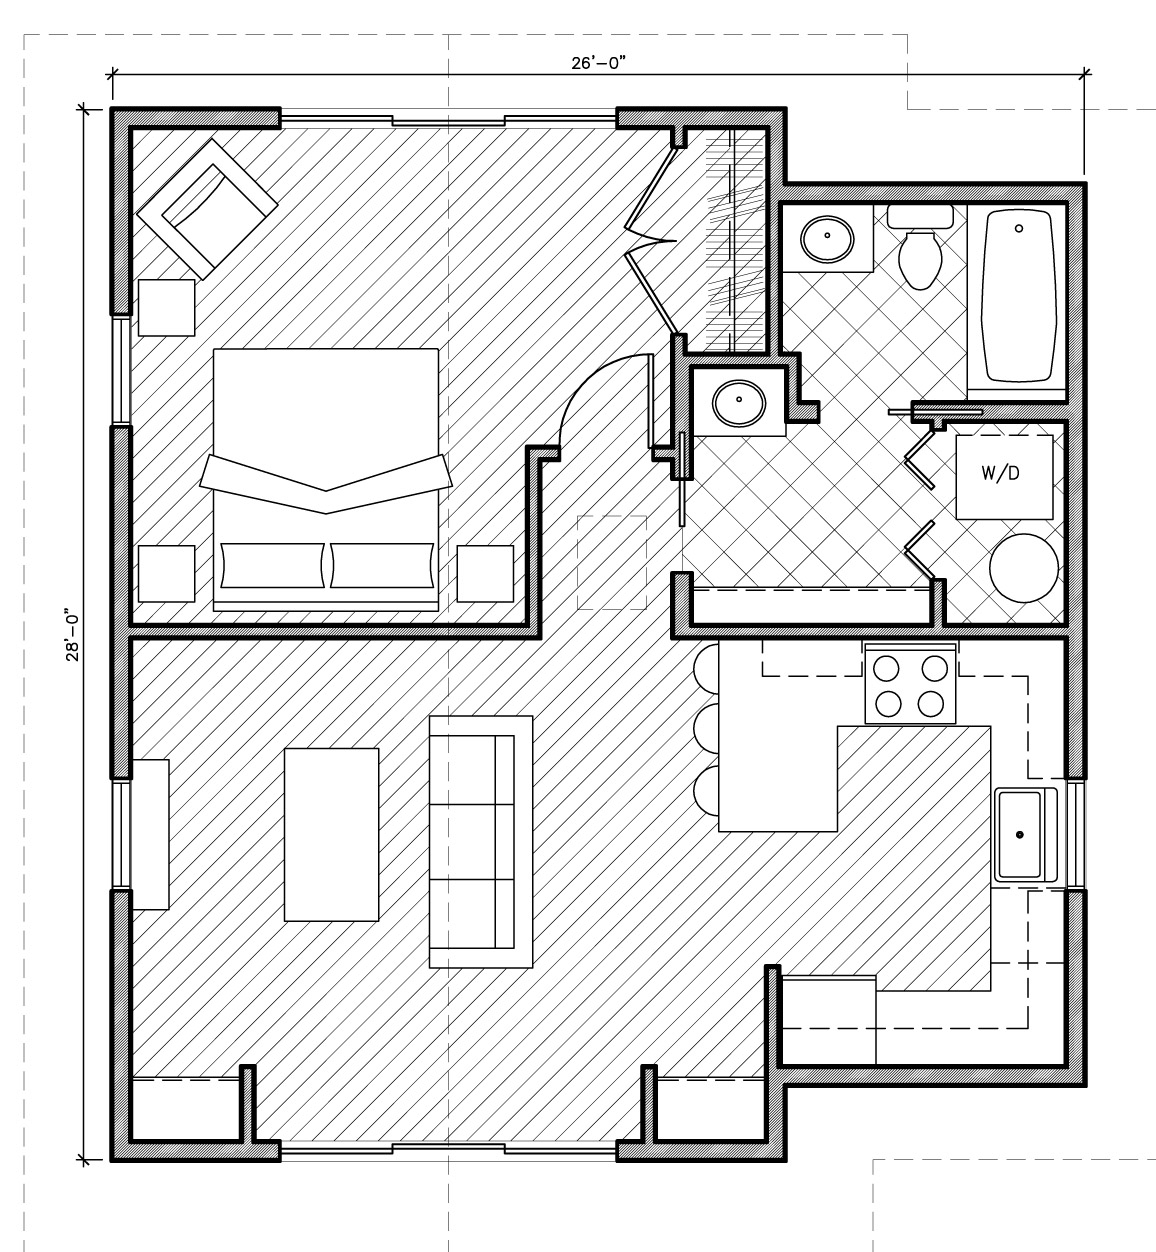 Design banter home plan collection Small one room house plans